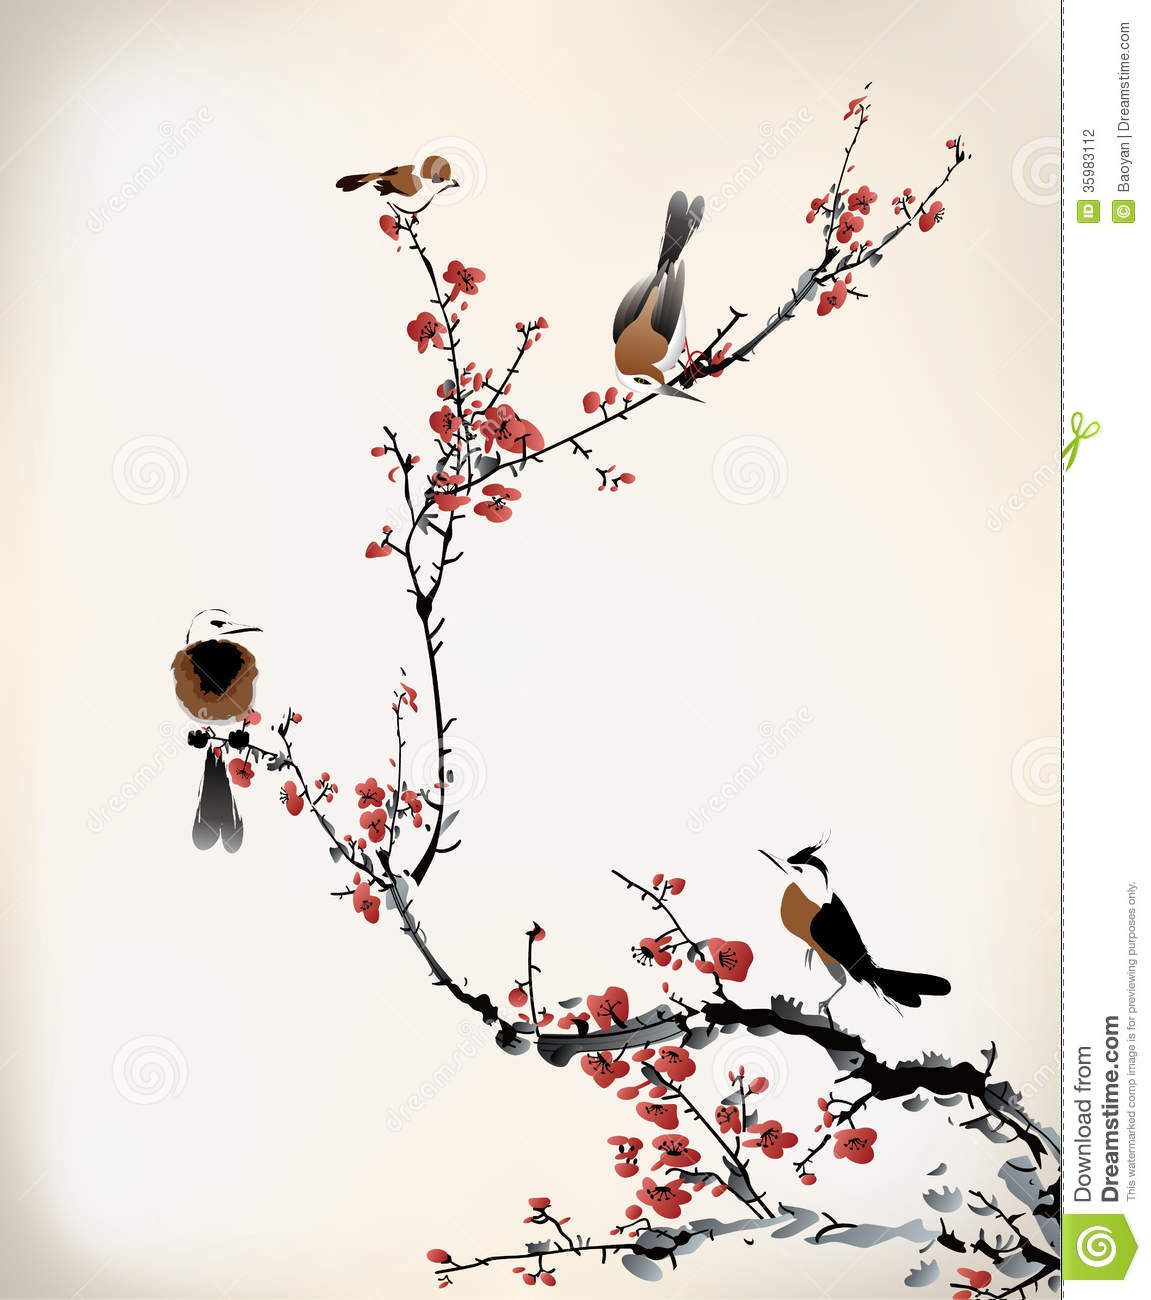 Bird Painting Stock Photography - Image: 35983112